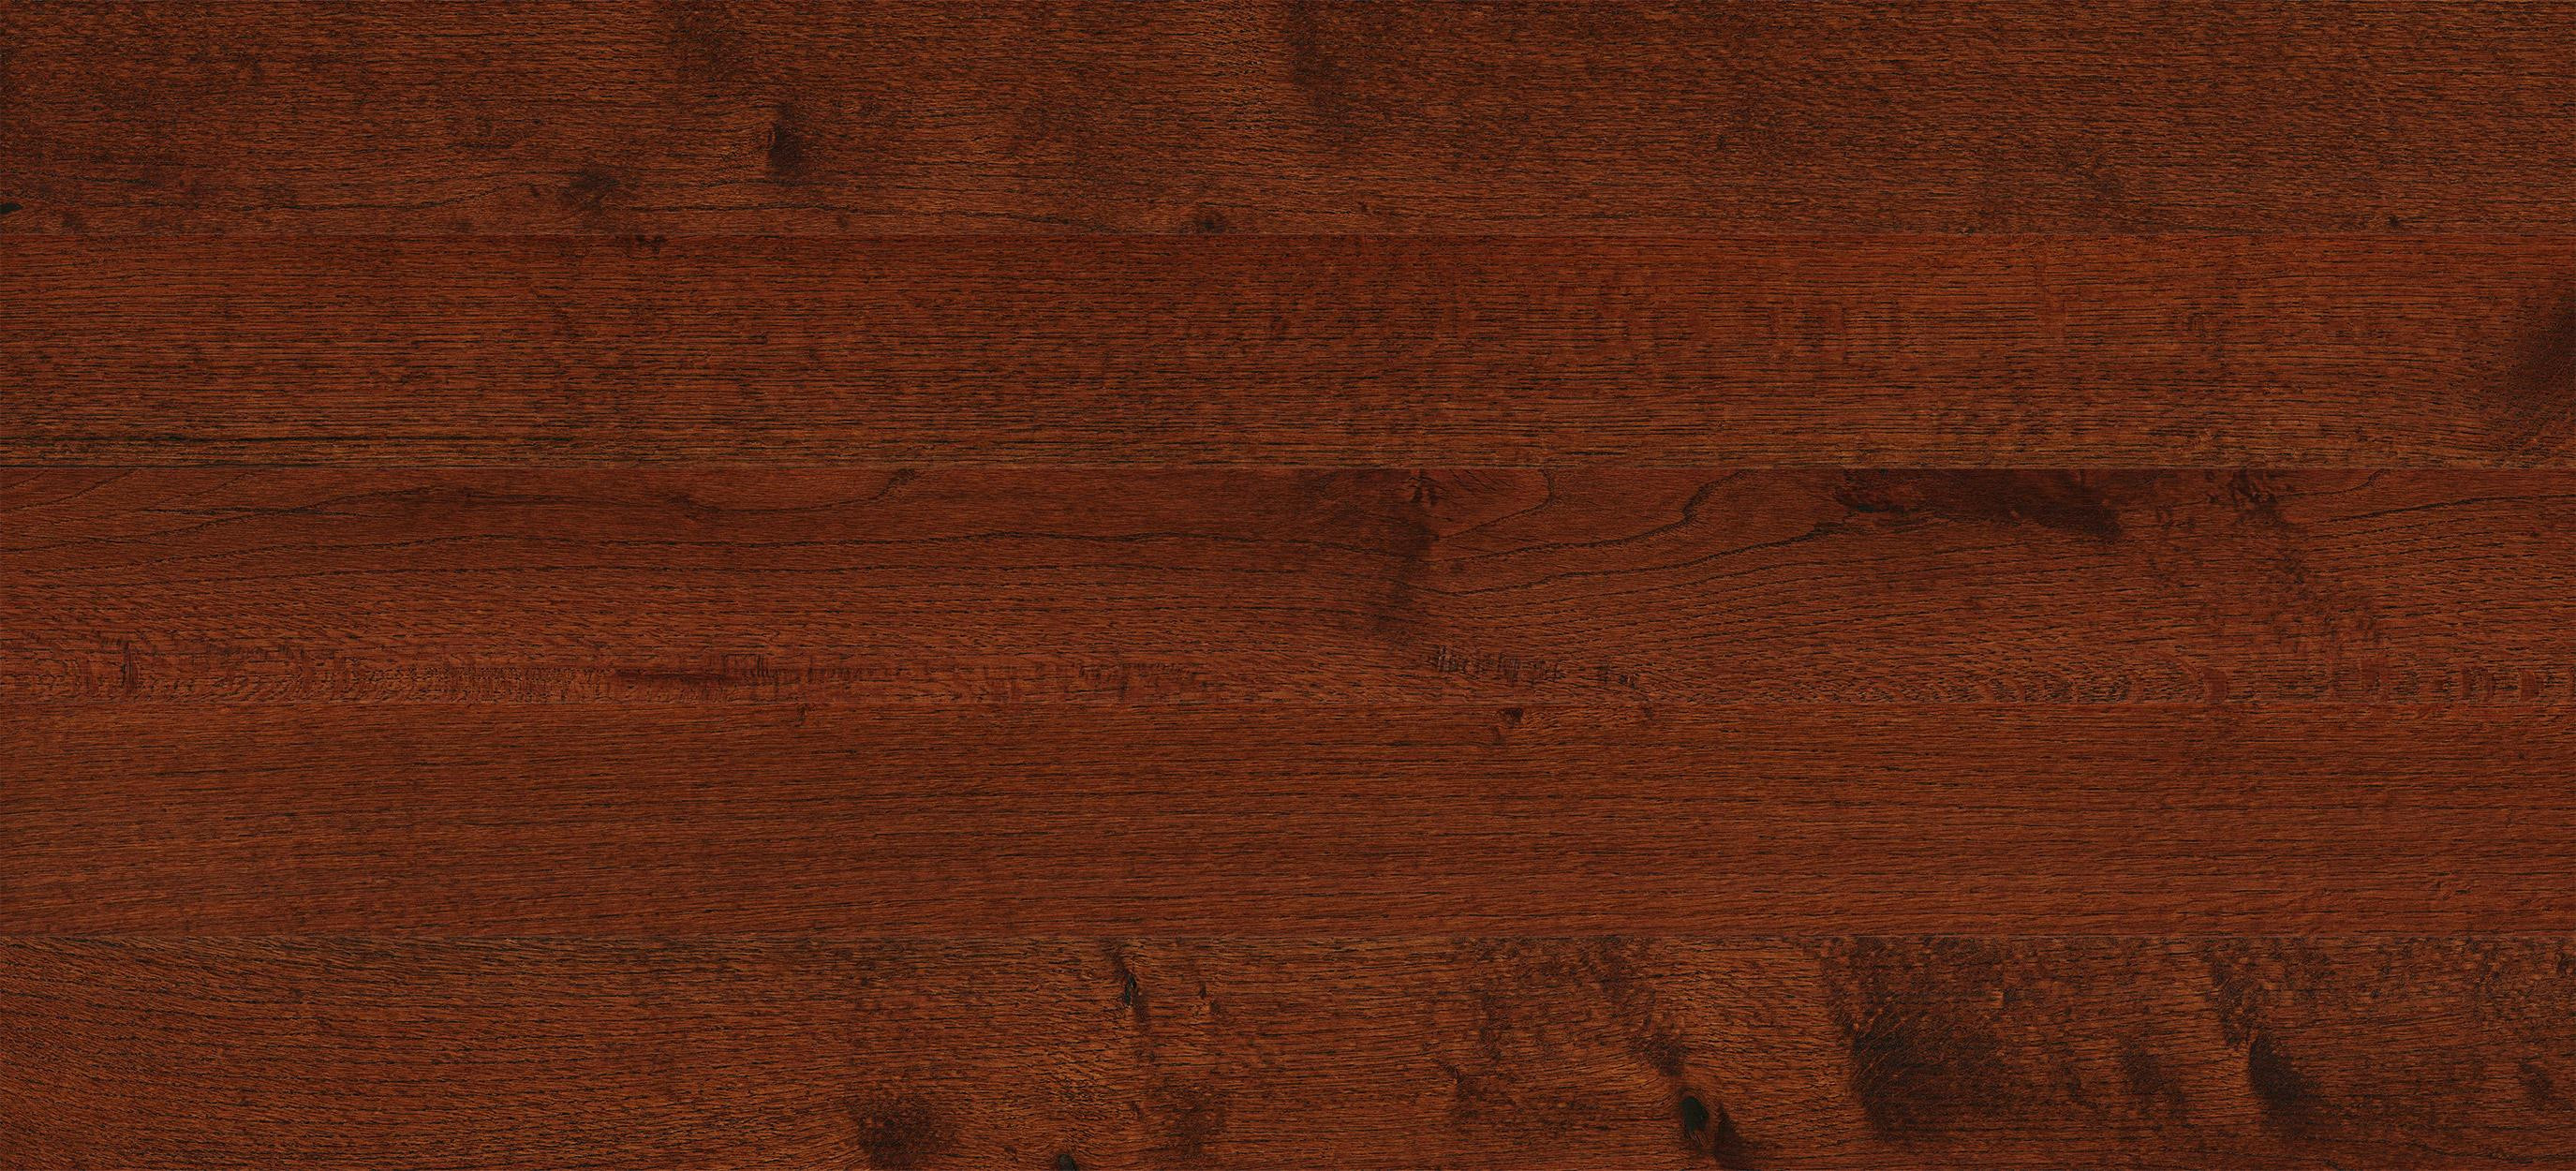 fake hardwood floor options of timber hardwood red oak sorrell 5 wide solid hardwood flooring in red oak sorrell timber solid 5 x 55 ish horizontal